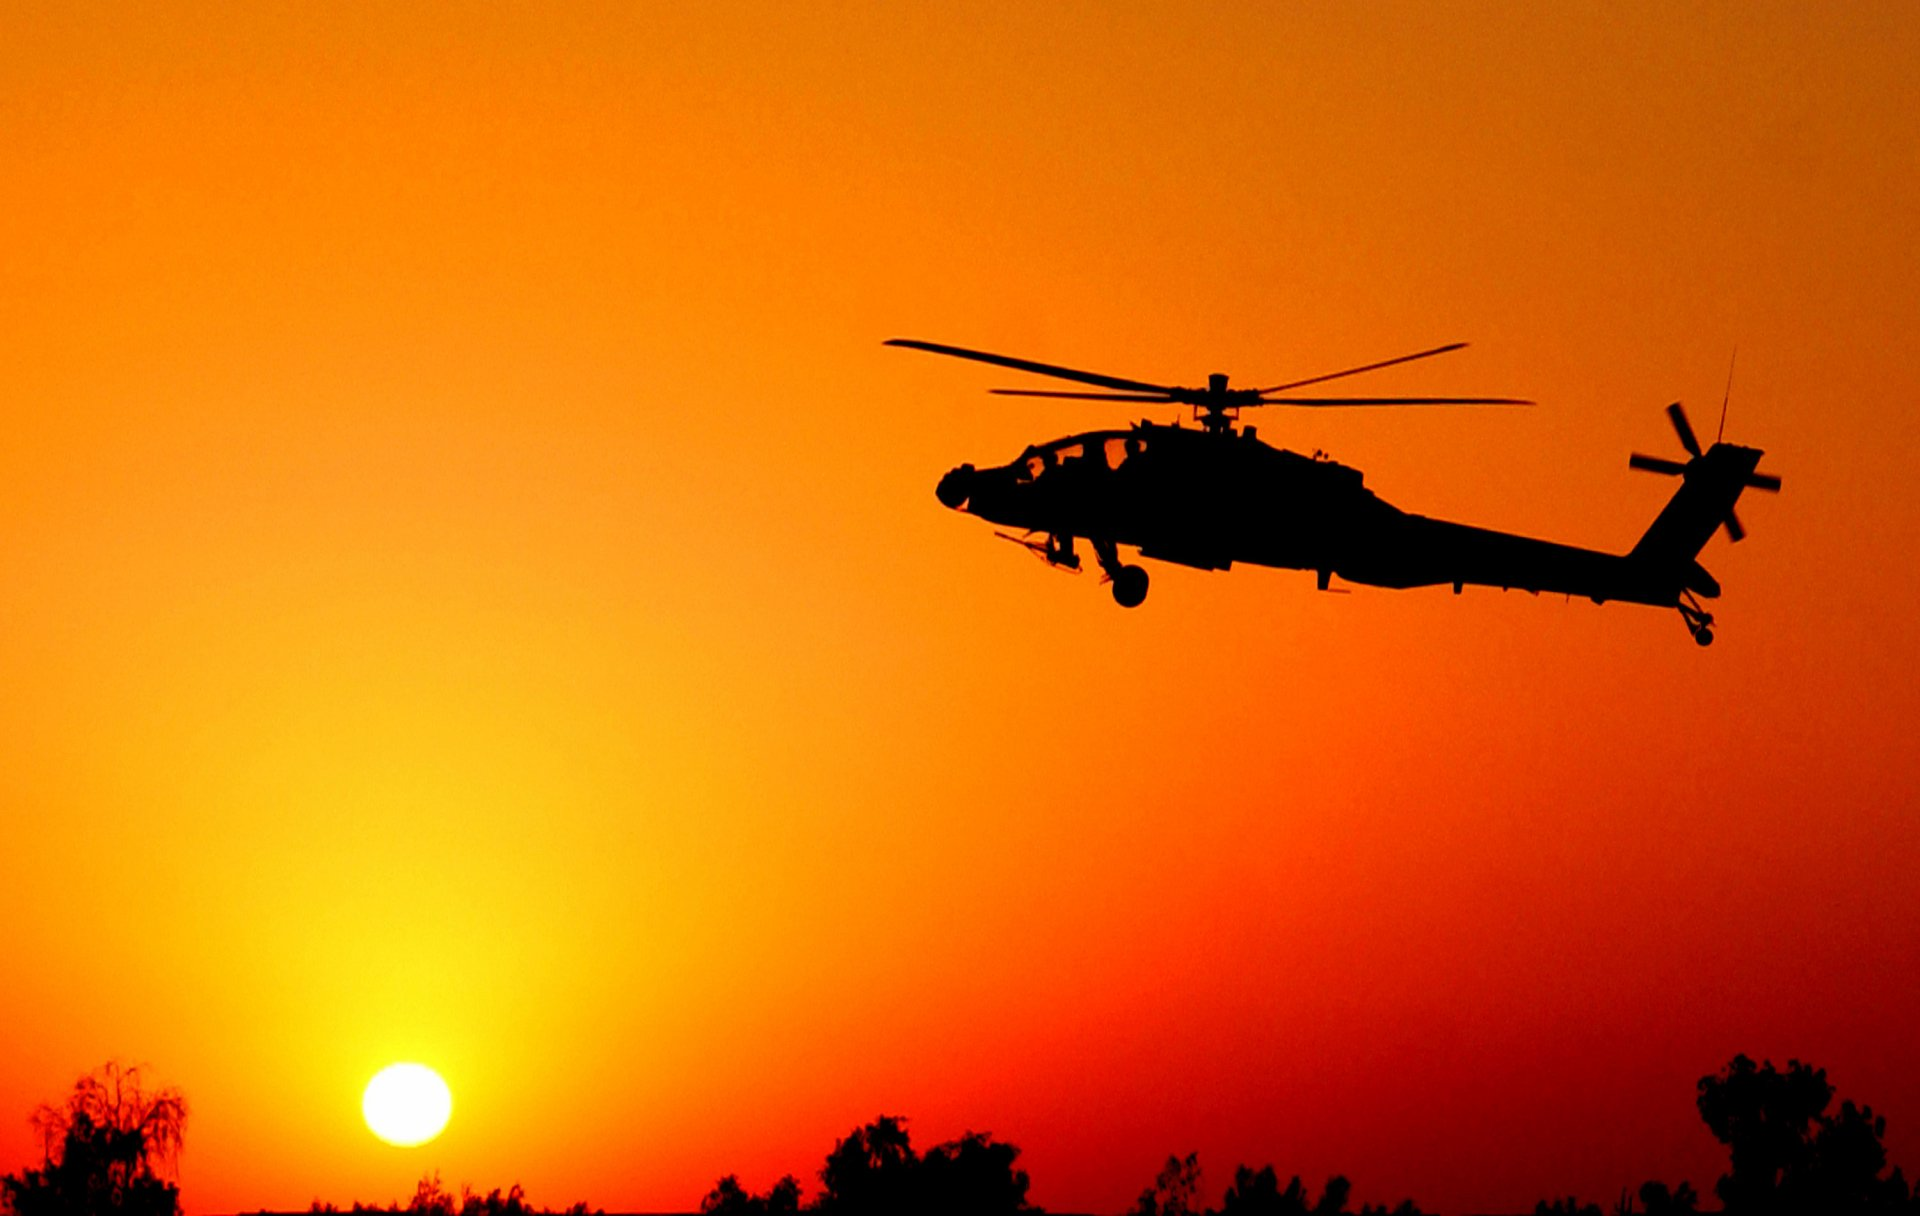 Military - Boeing Ah-64 Apache  Helicopter Wallpaper